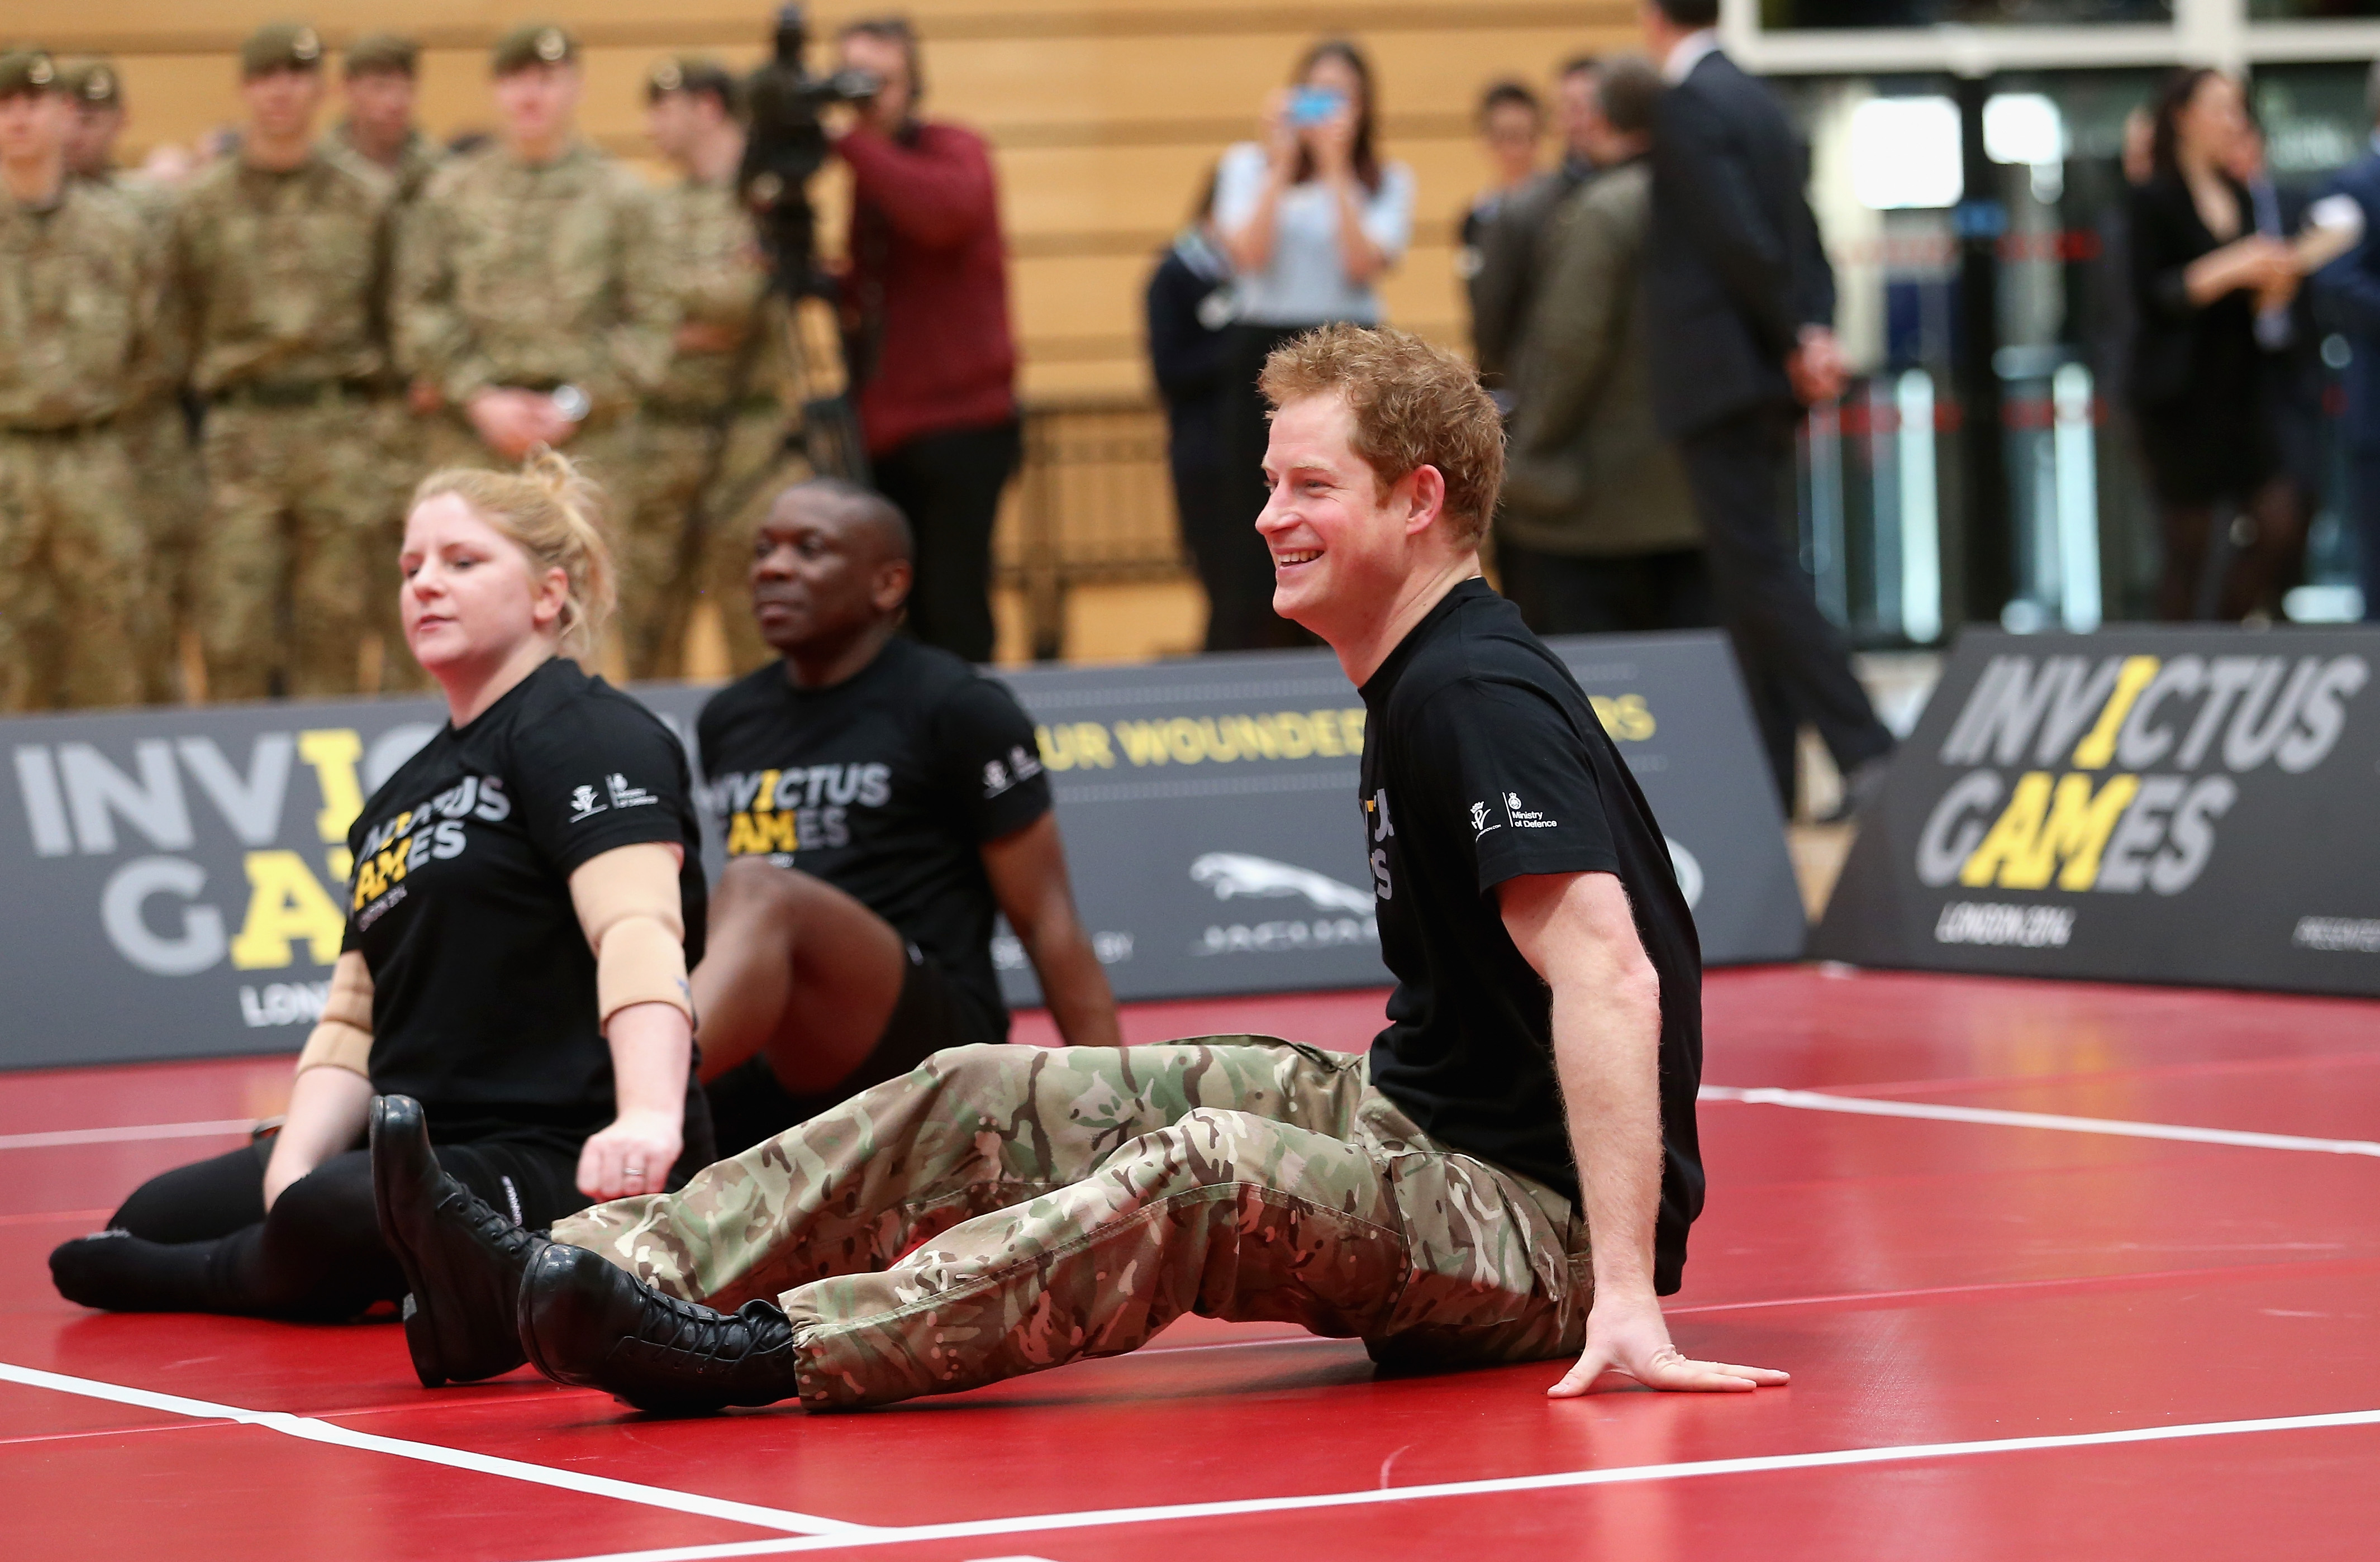 Prince Harry plays sitting volleyball as he takes part in a match at the media launch for the Invictus Games 2014 at the Copper Box Arena in the Olympic Park on March 6, 2014 in London, England. The Invictus Games for wounded, injured and sick serivce personnel will use the power of sport to inspire recovery, support rehabilitation and generate a wider understanding of those who serve the country. Prince Harry has brought the Games to the UK following a trip to see the Warrior Games in Colorado in 2013. 300 competitors from around the world will take part from the 10th-14th September.